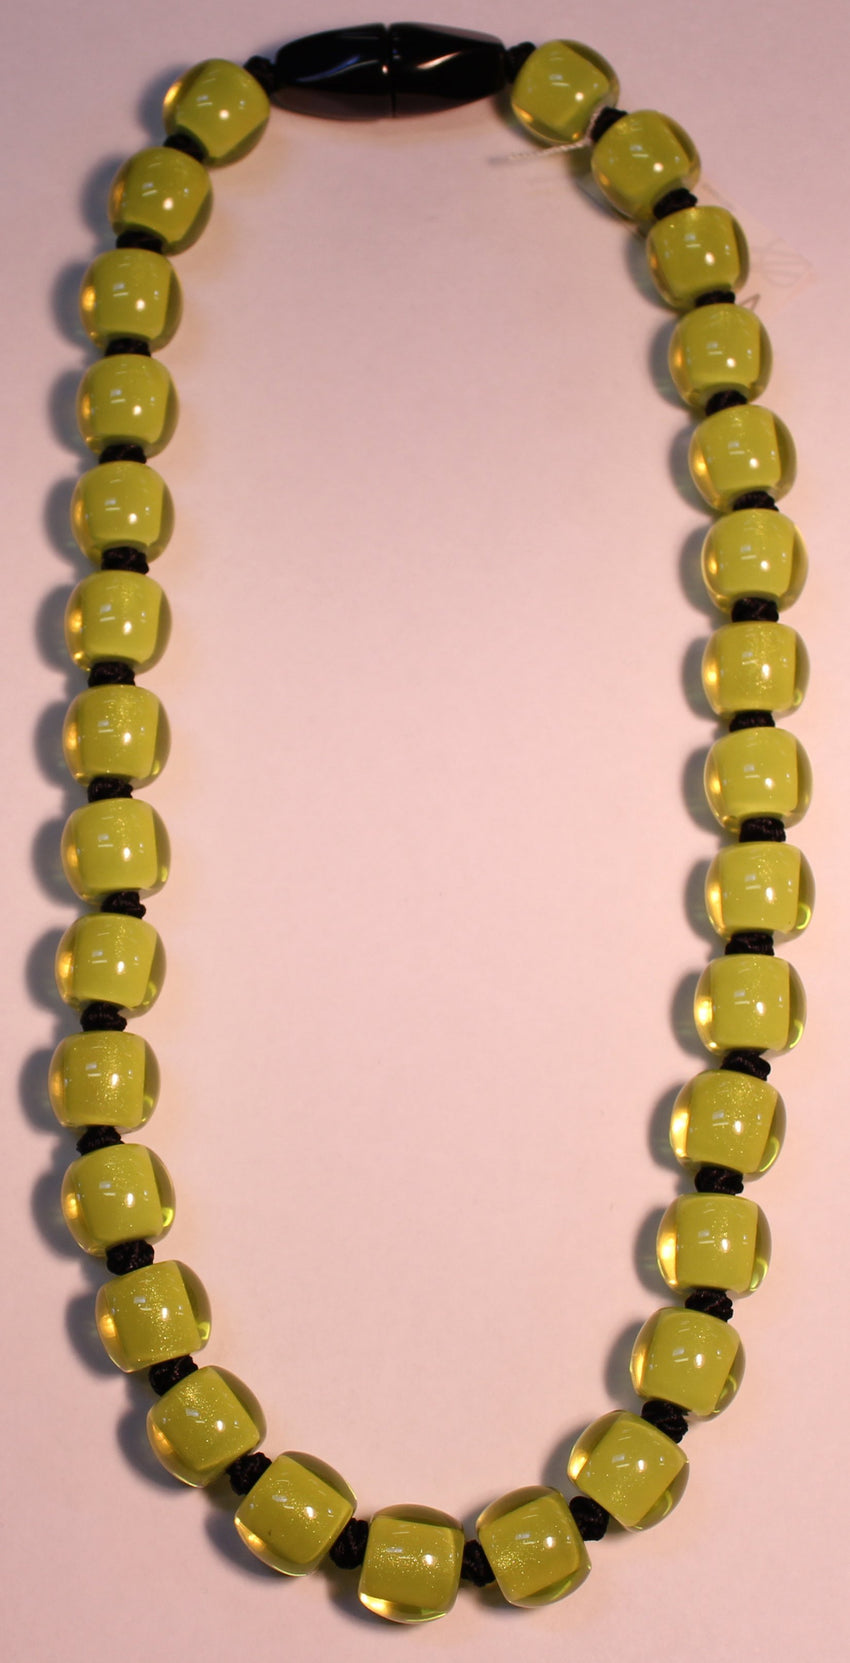 40101199019Q30 Colourful Beads Lime Bead Black 9019 Q30